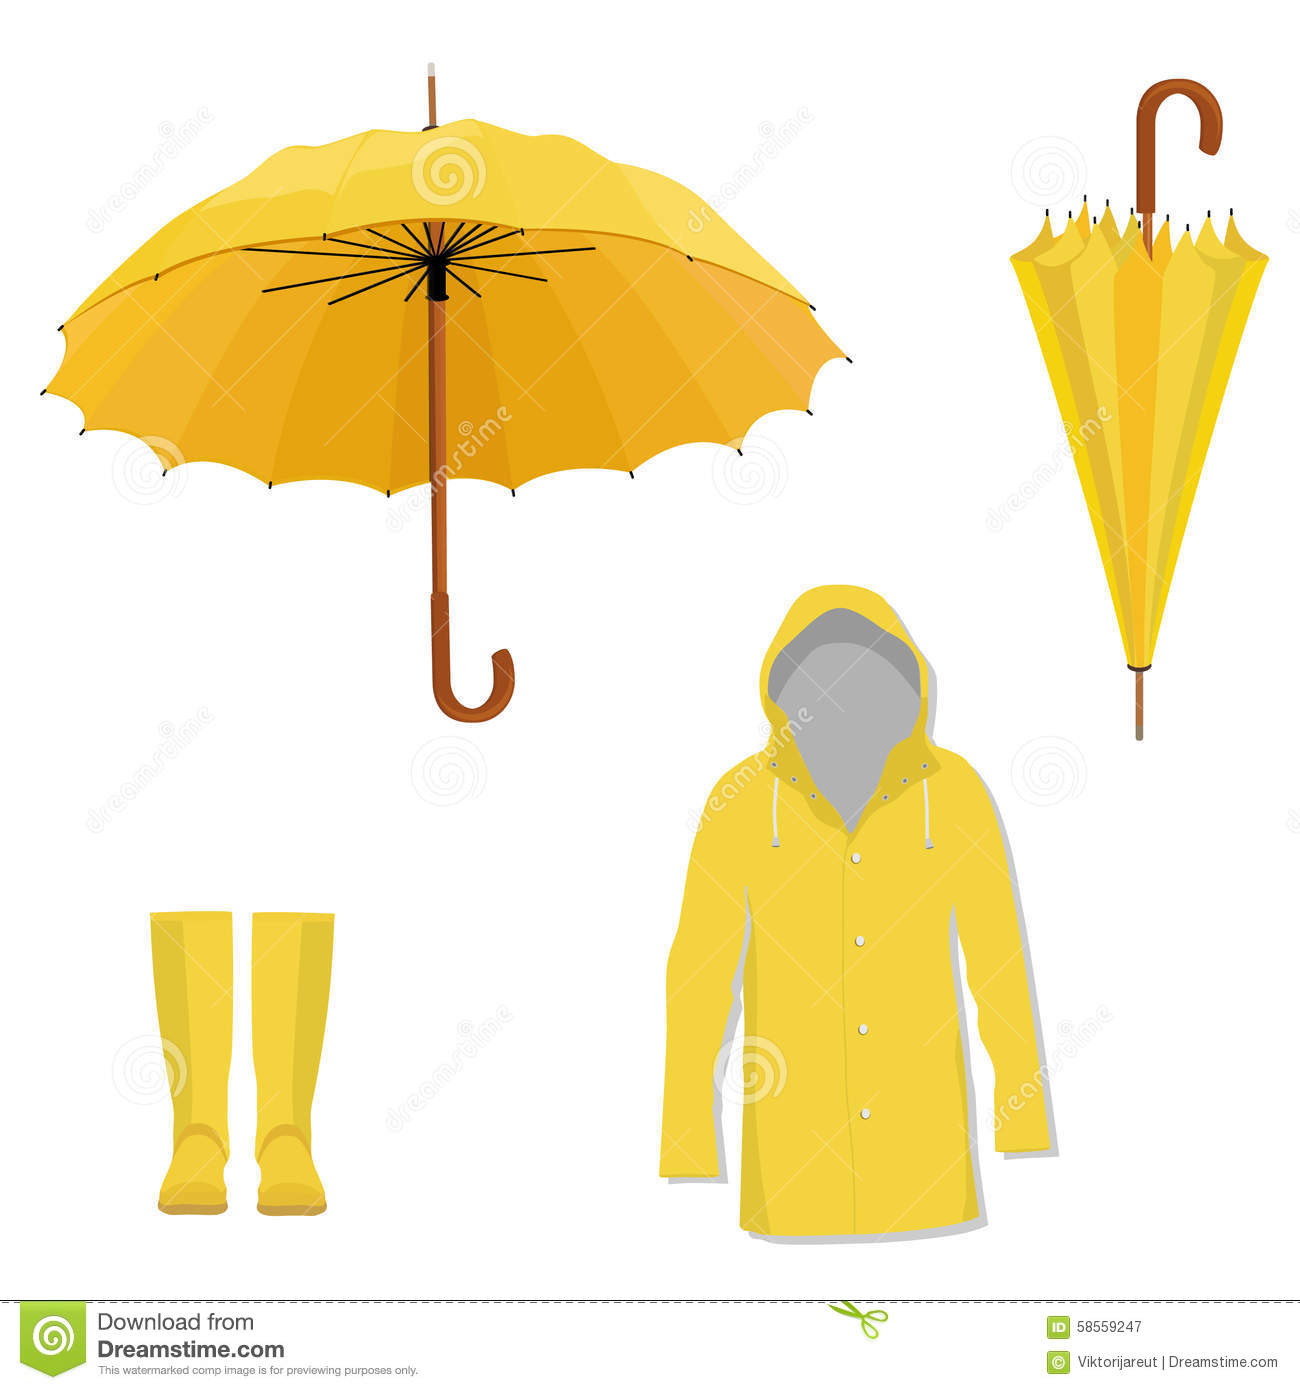 Boots fashion pic boots clip art - Raincoat Boots Umbrella Royalty Free Stock Photography